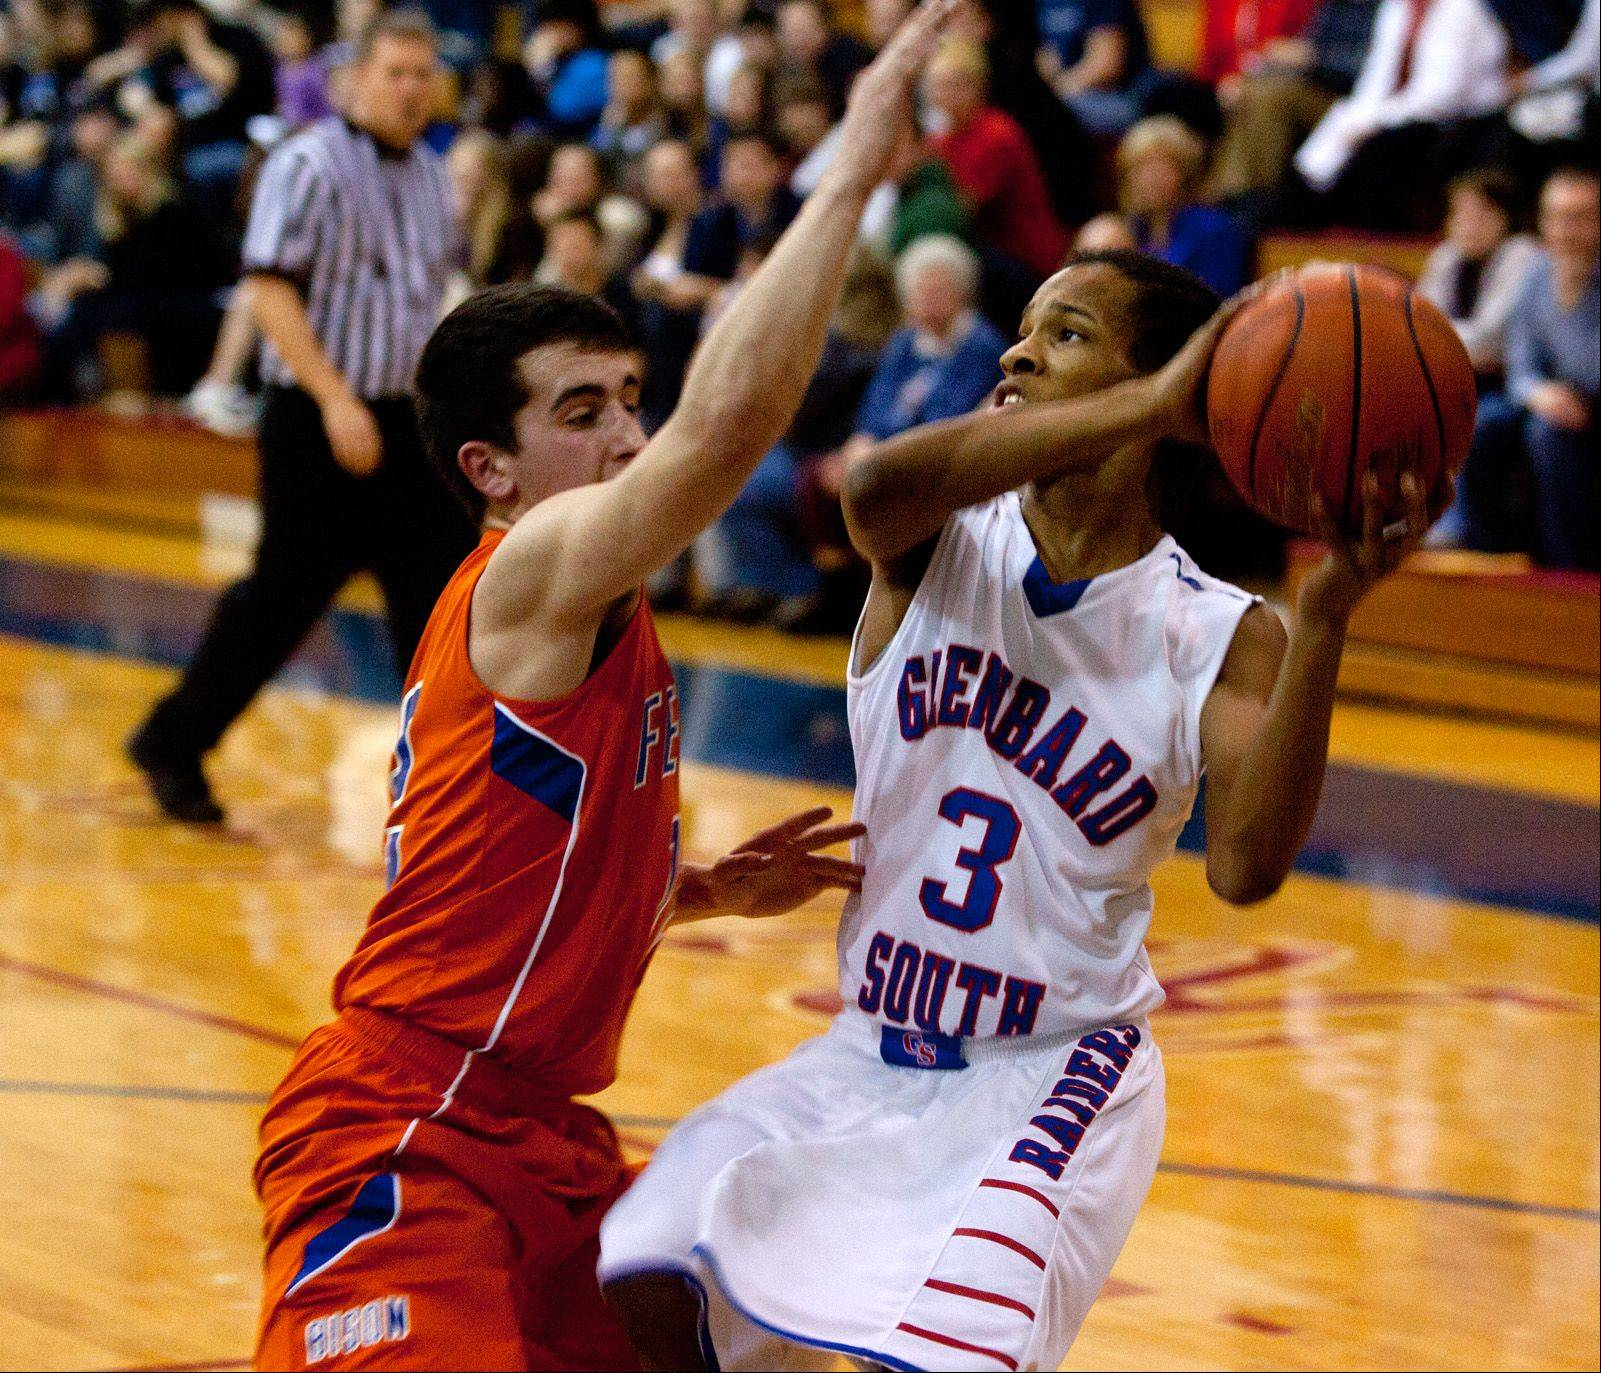 Glenbard South's Chaun Rickette eyes the basket for a pair of his 16 first quarter points against Fenton.